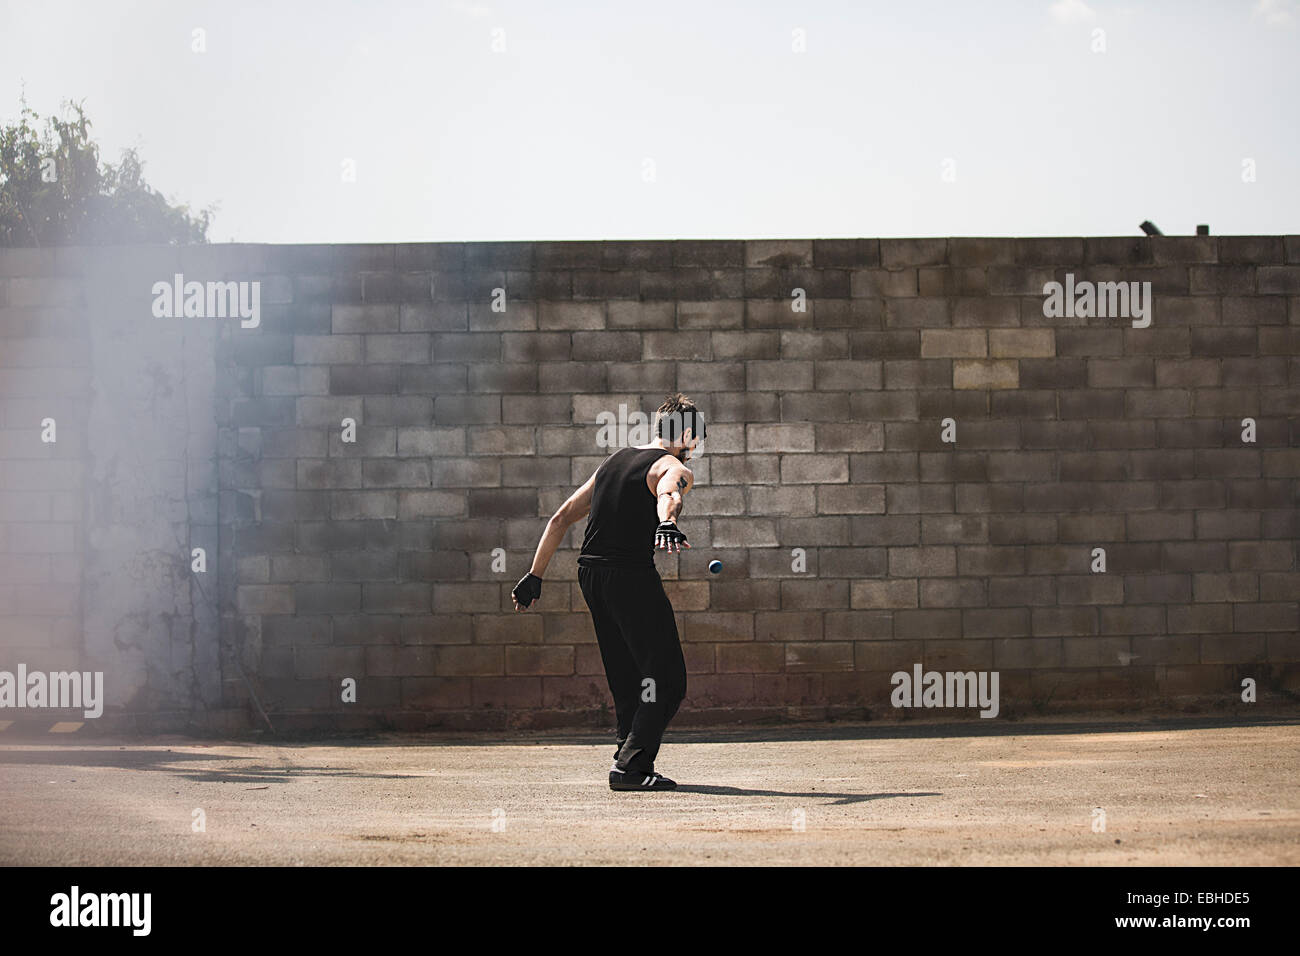 Rear view of young male handball player hitting ball against wall - Stock Image